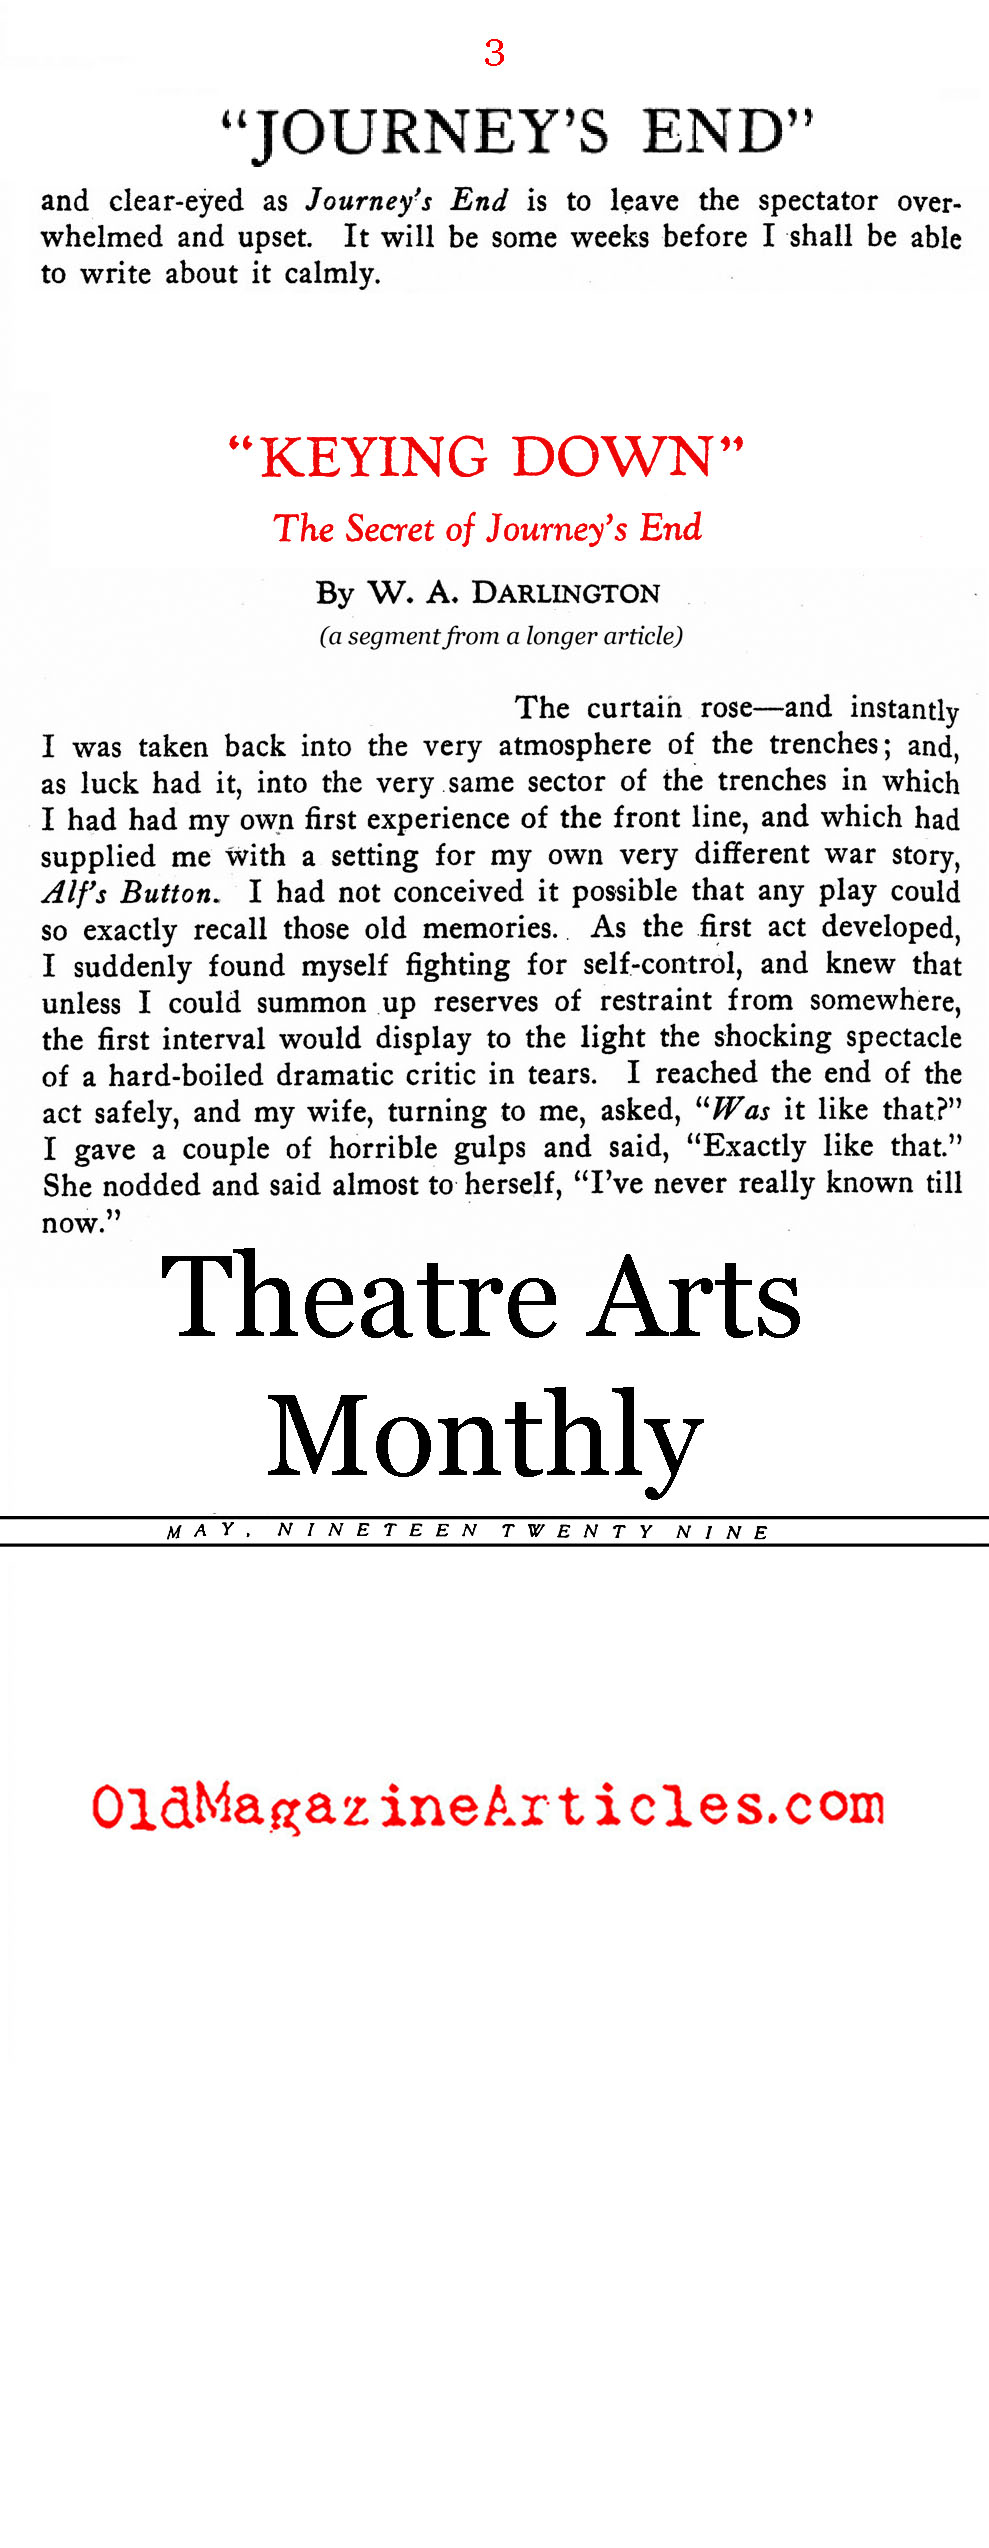 JOURNEY'S END by R.C. Sheriff (Theatre Arts Magazine, 1929)